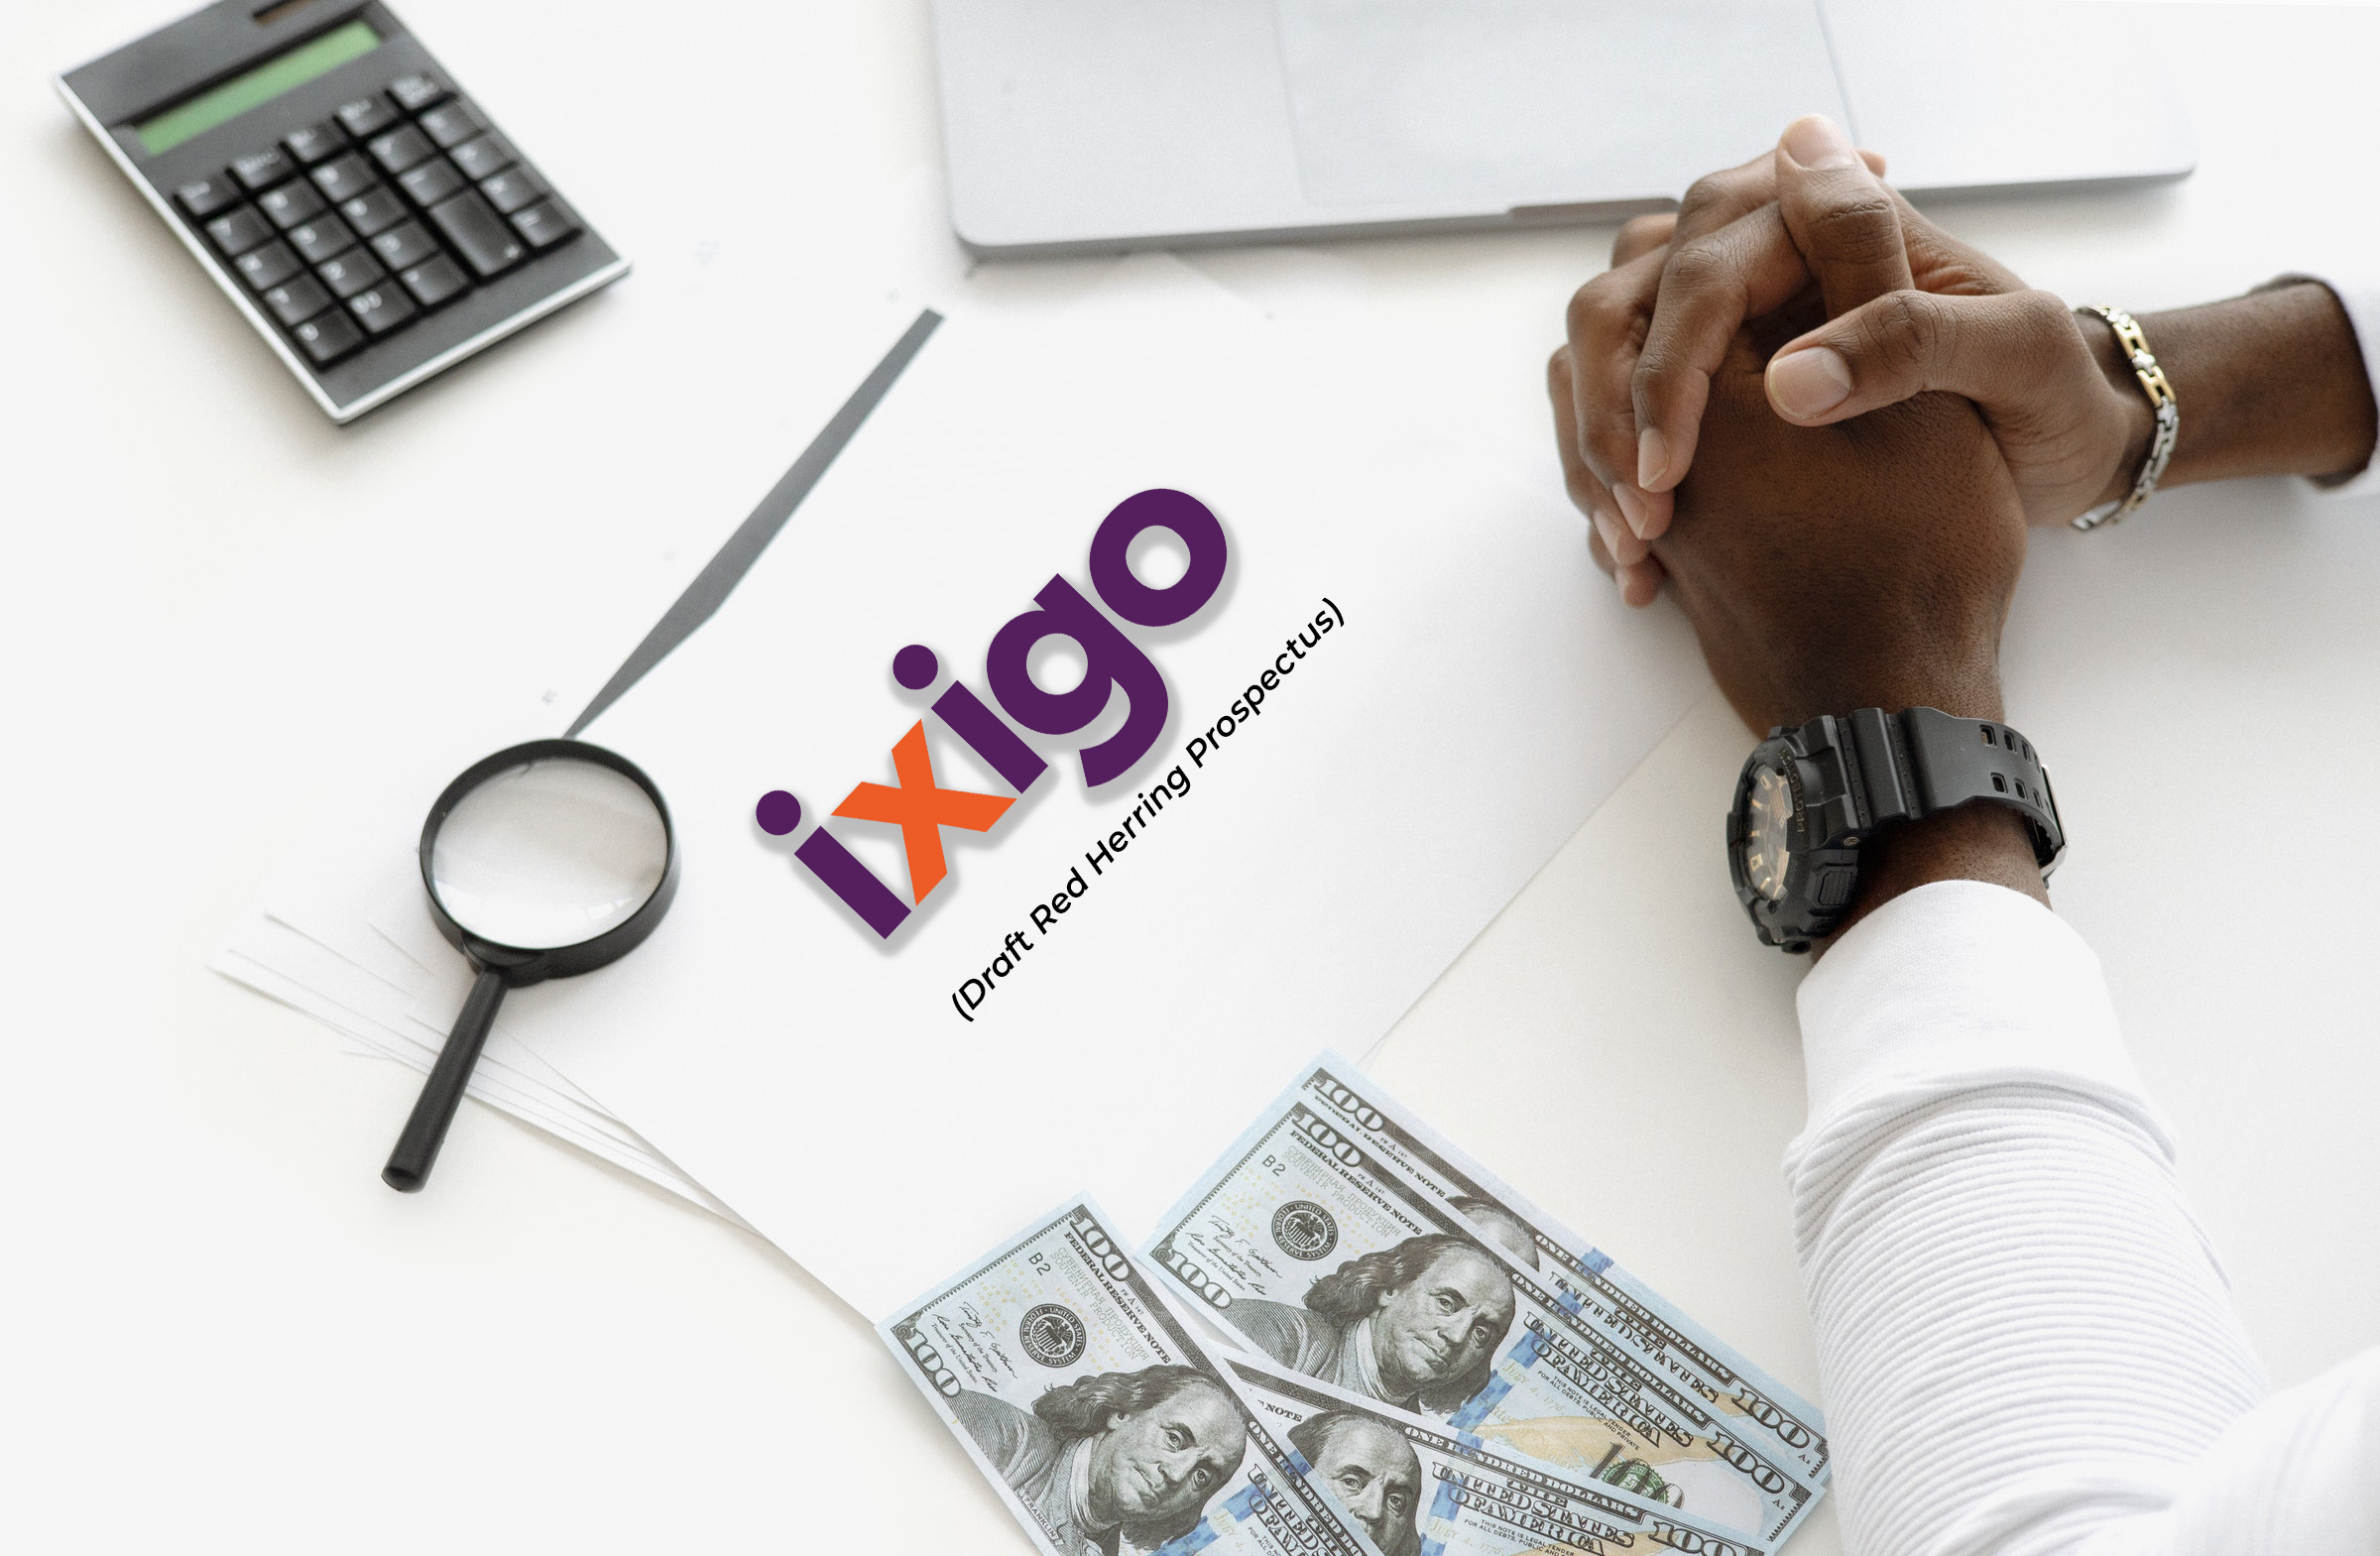 Image representing a Person's hands, pen, glass and a paper representing Ixigo IPO draft papers